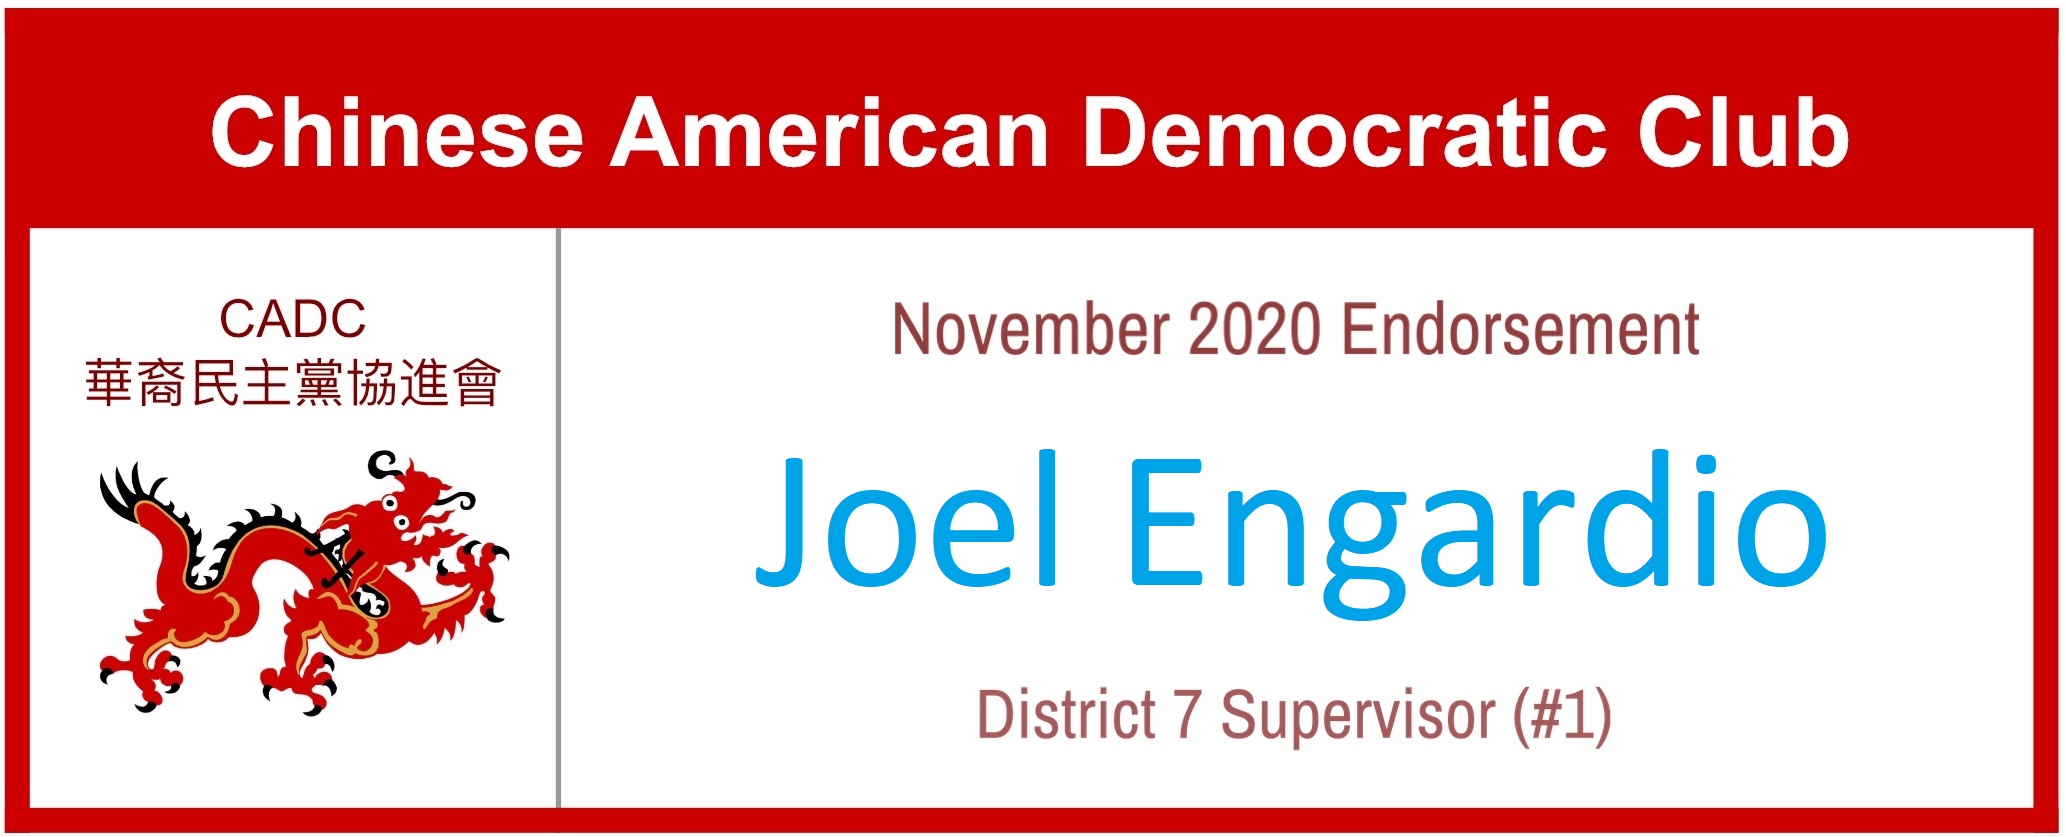 Joel Engardio for District 7 Supervisor - CADC #1 Endorsement November 2020